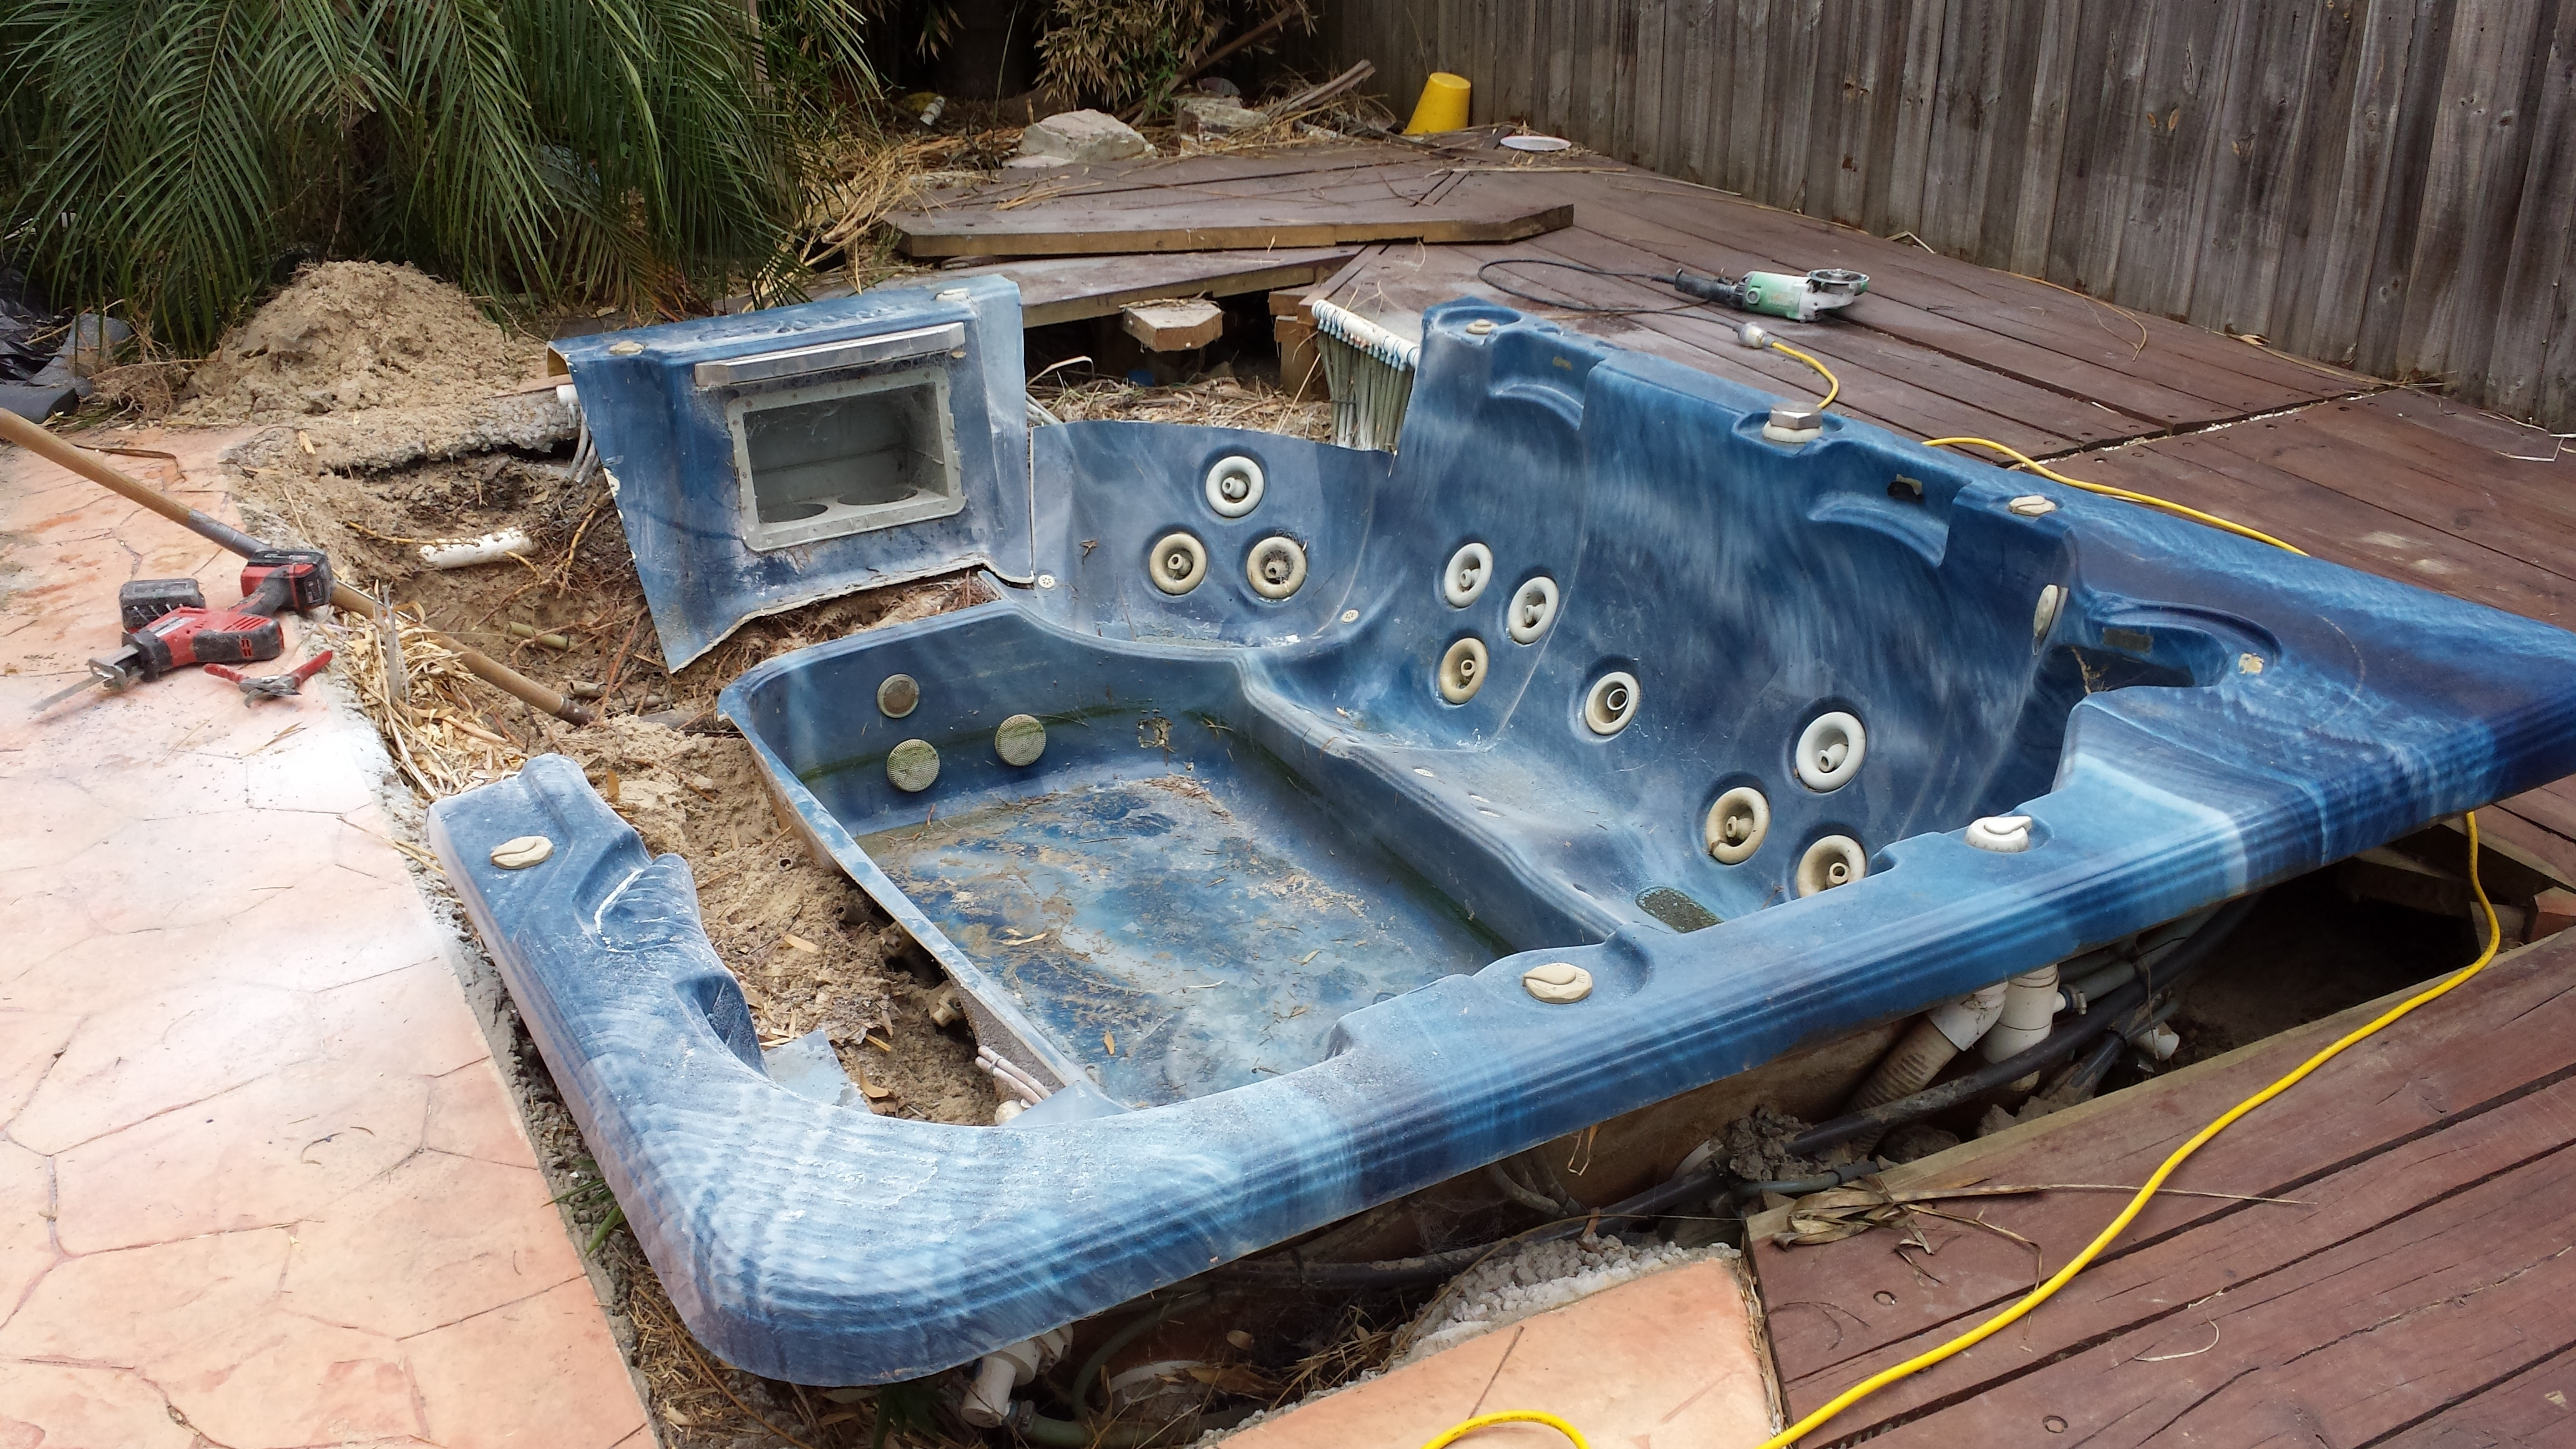 In Ground Hot Tub Installation   Migrant Resource Network